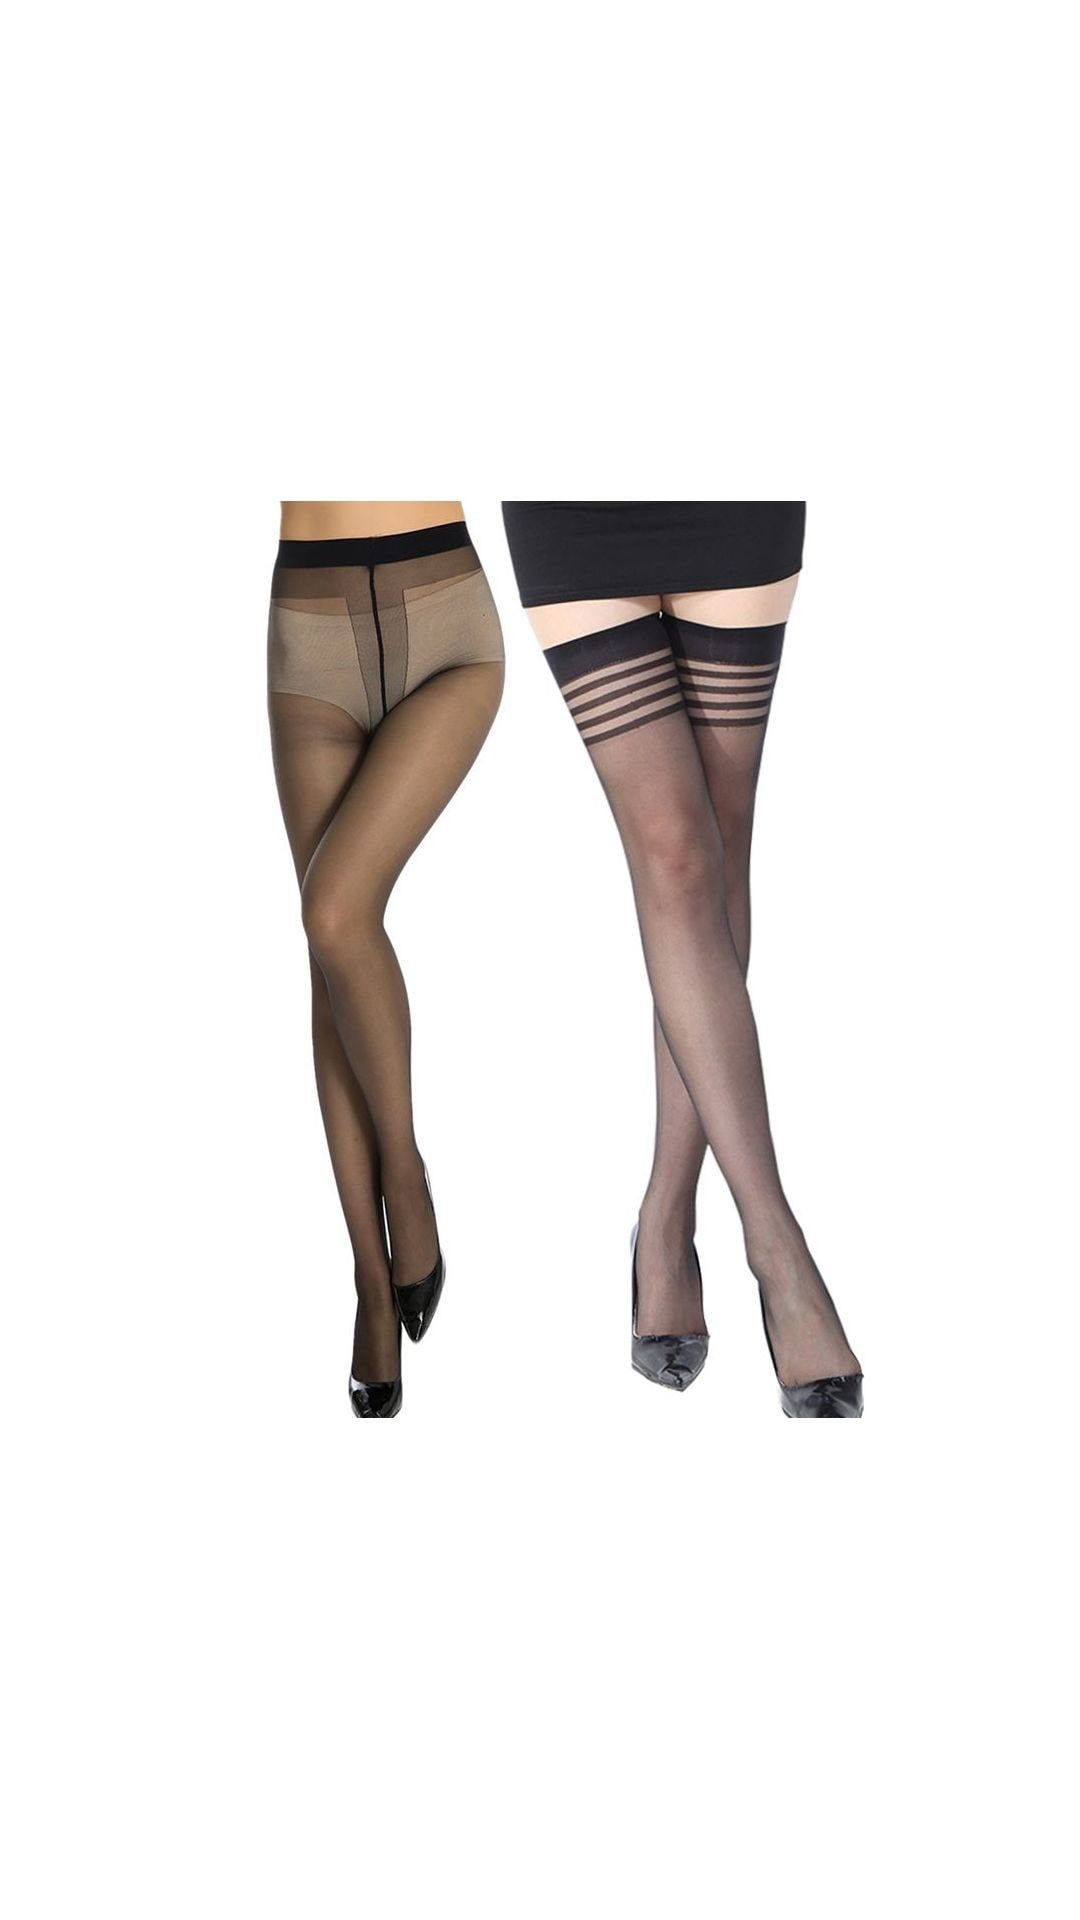 6531d2899 https   assetscdn1.paytm.com images catalog product . Stylefolio Combo of Women s  Pantyhose and Thigh High Stockings Excellent Stretch Long Comfort Sheer ...